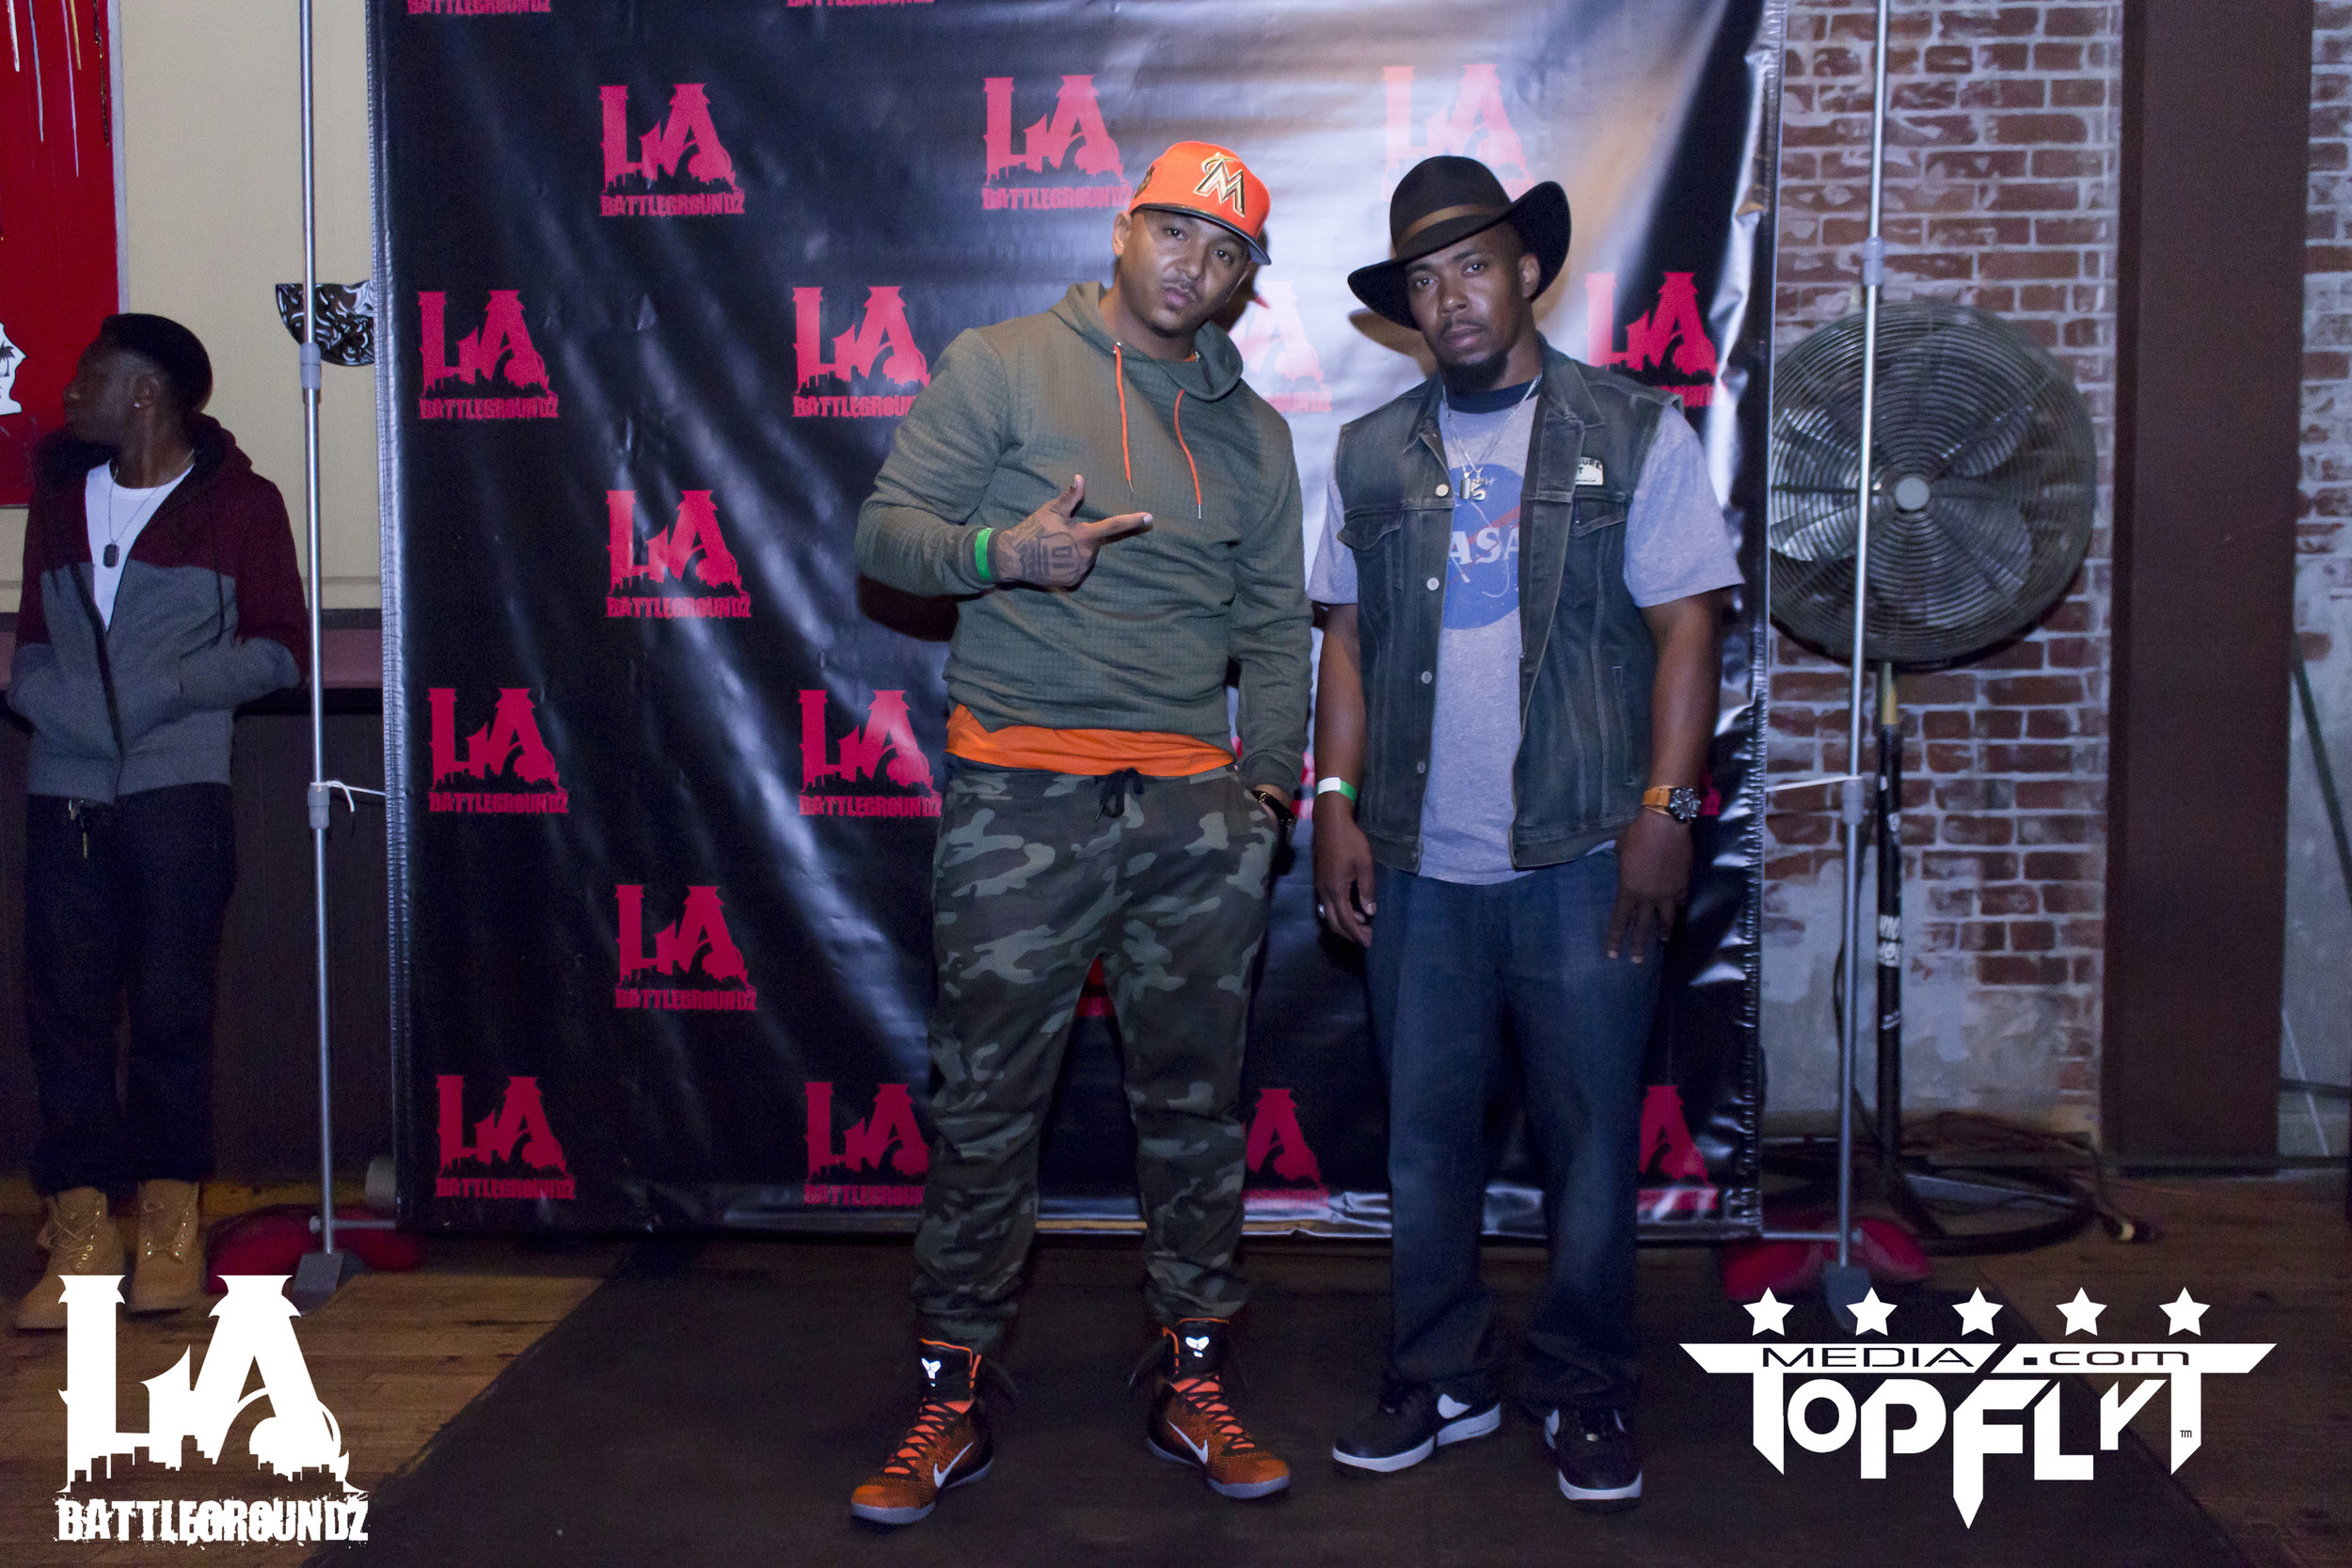 LA Battlegroundz - Decembarfest - The Christening.jpg